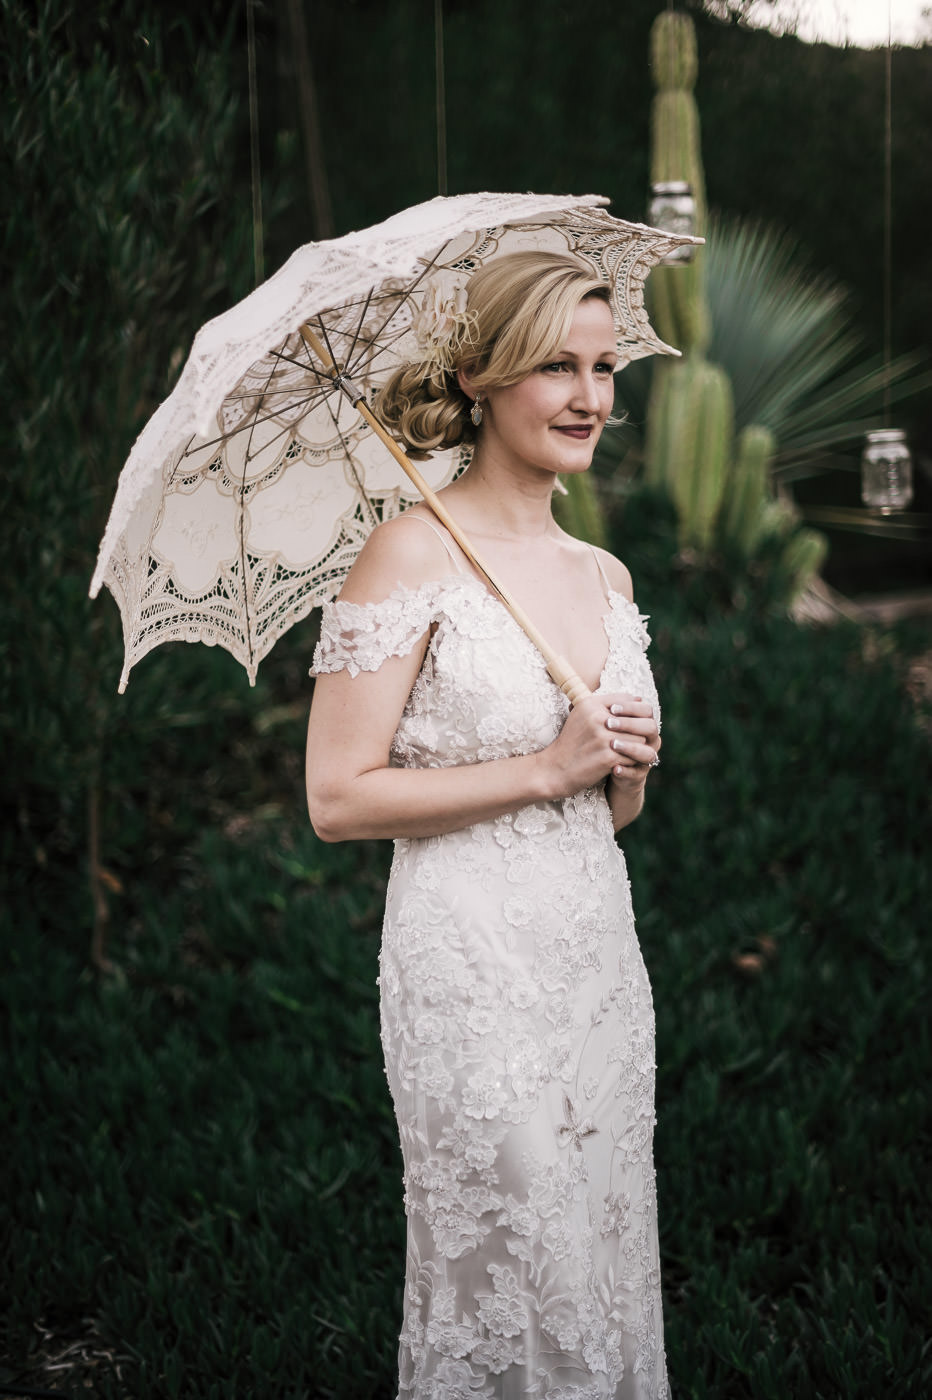 Whimsical vintage bride twirls a parasol before the marriage ceremony.